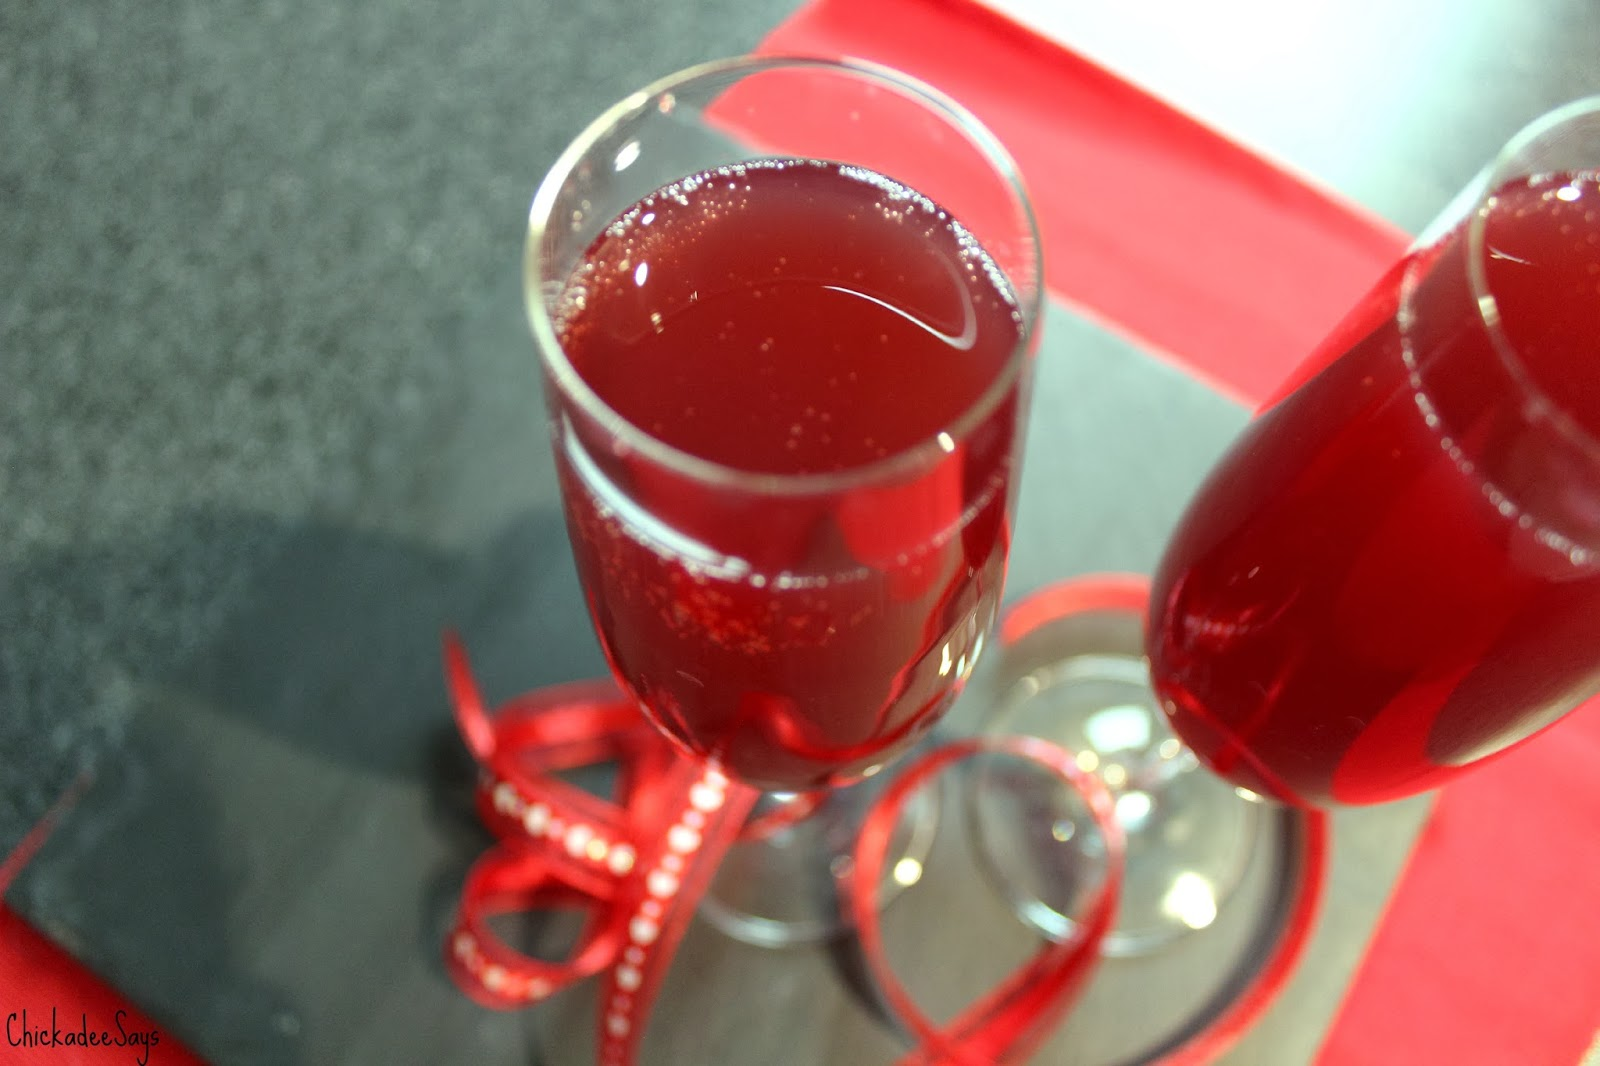 fun, bubbly, and incredibly quick, the Spiked Pomegranate Cream Soda ...